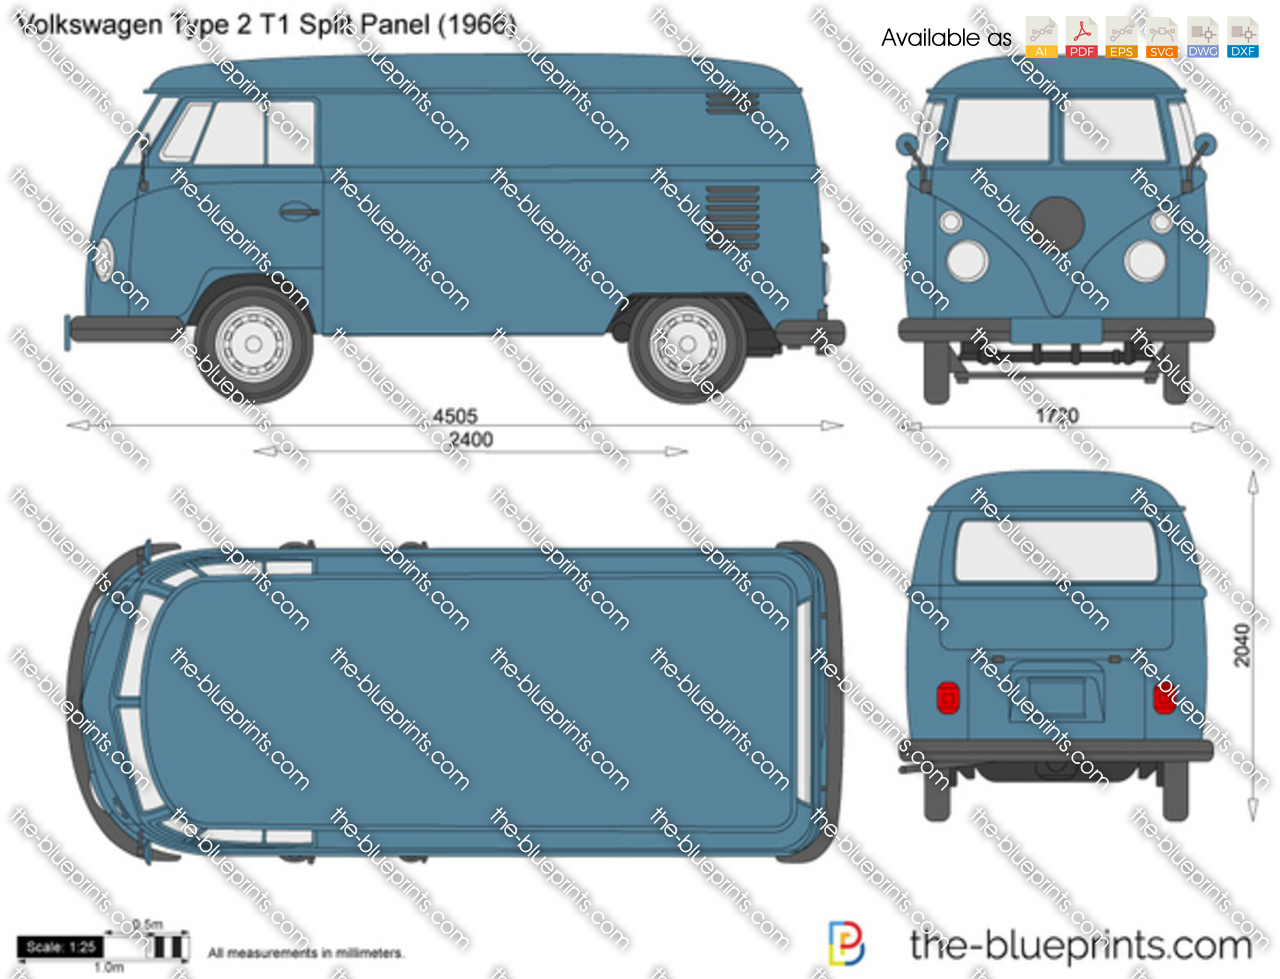 Volkswagen Type 2 T1 Split Panel 1954